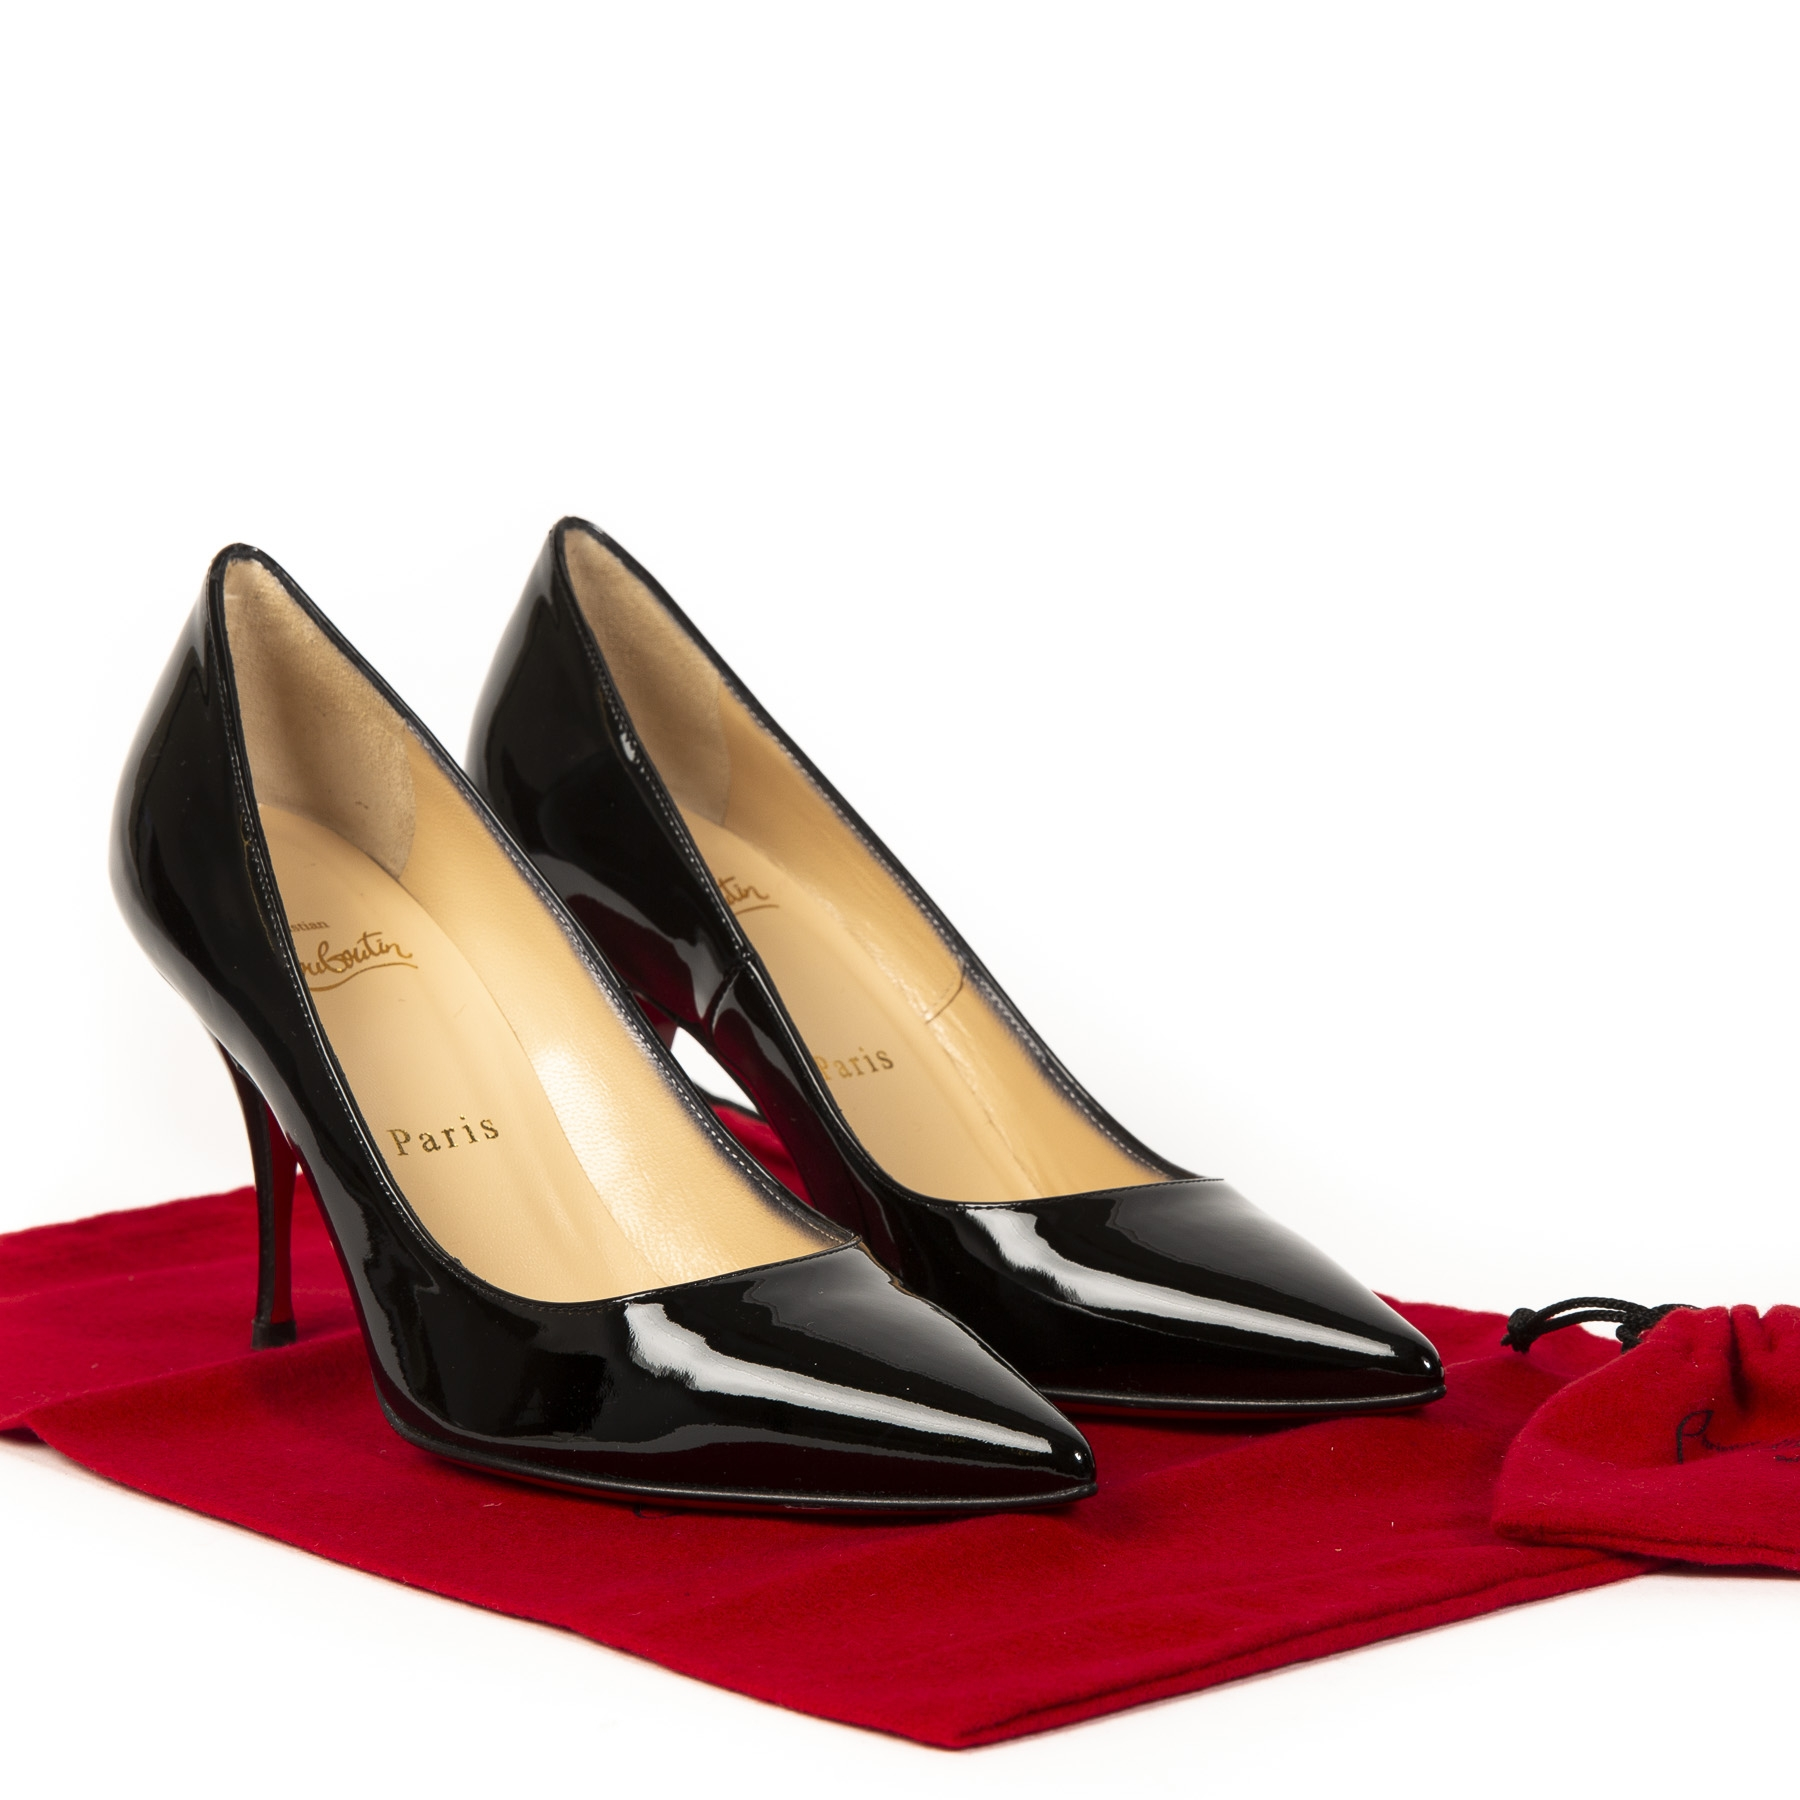 Authentieke tweedehands vintage Christian Louboutin Black New Piaf 85 Patent Leather Pumps koop online webshop LabelLOV